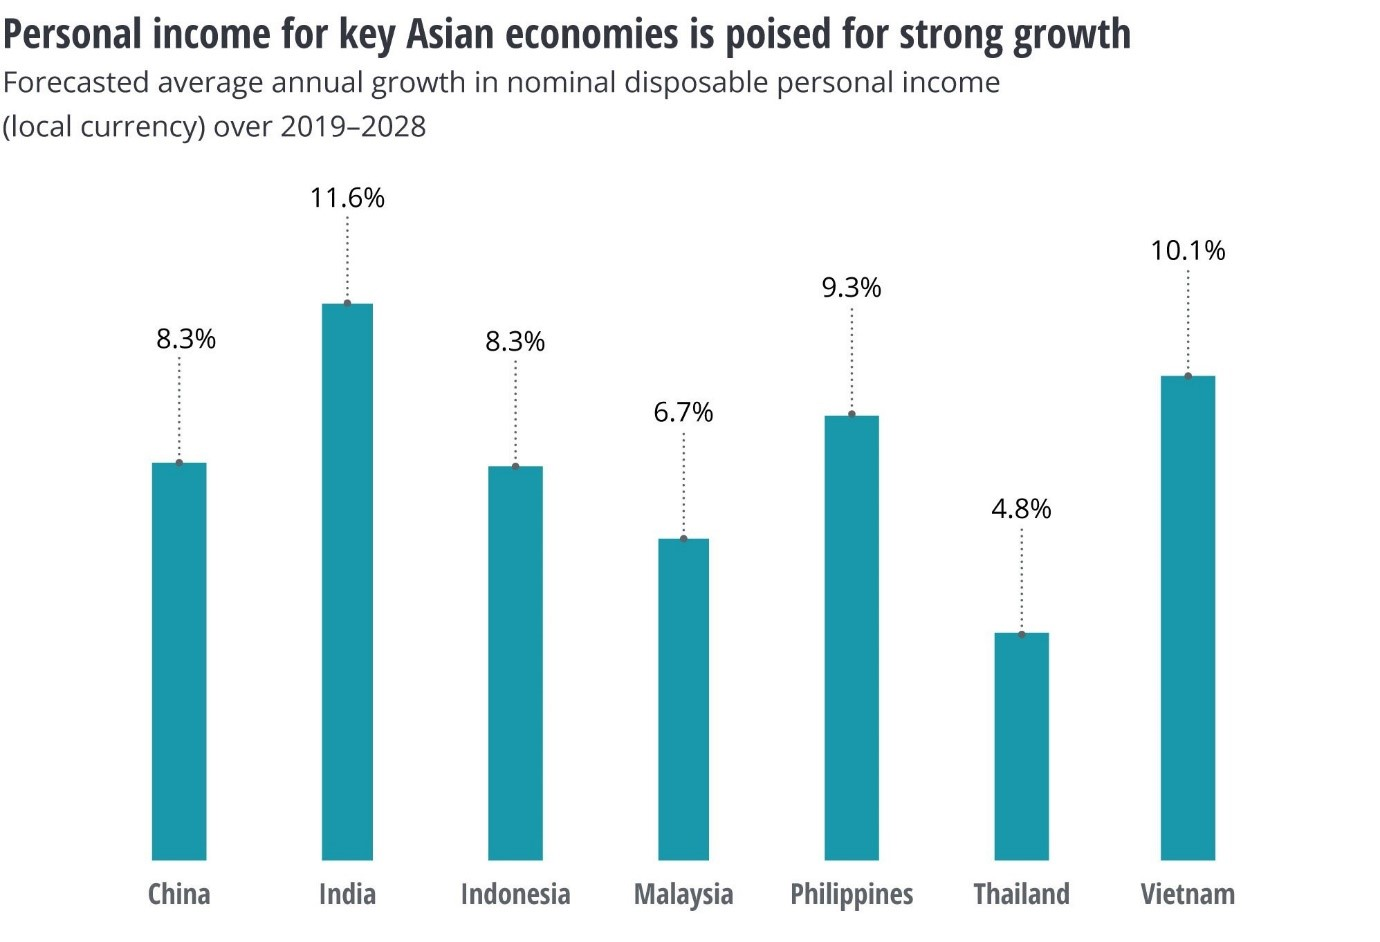 Personal income for key Asian economies is poised for strong growth